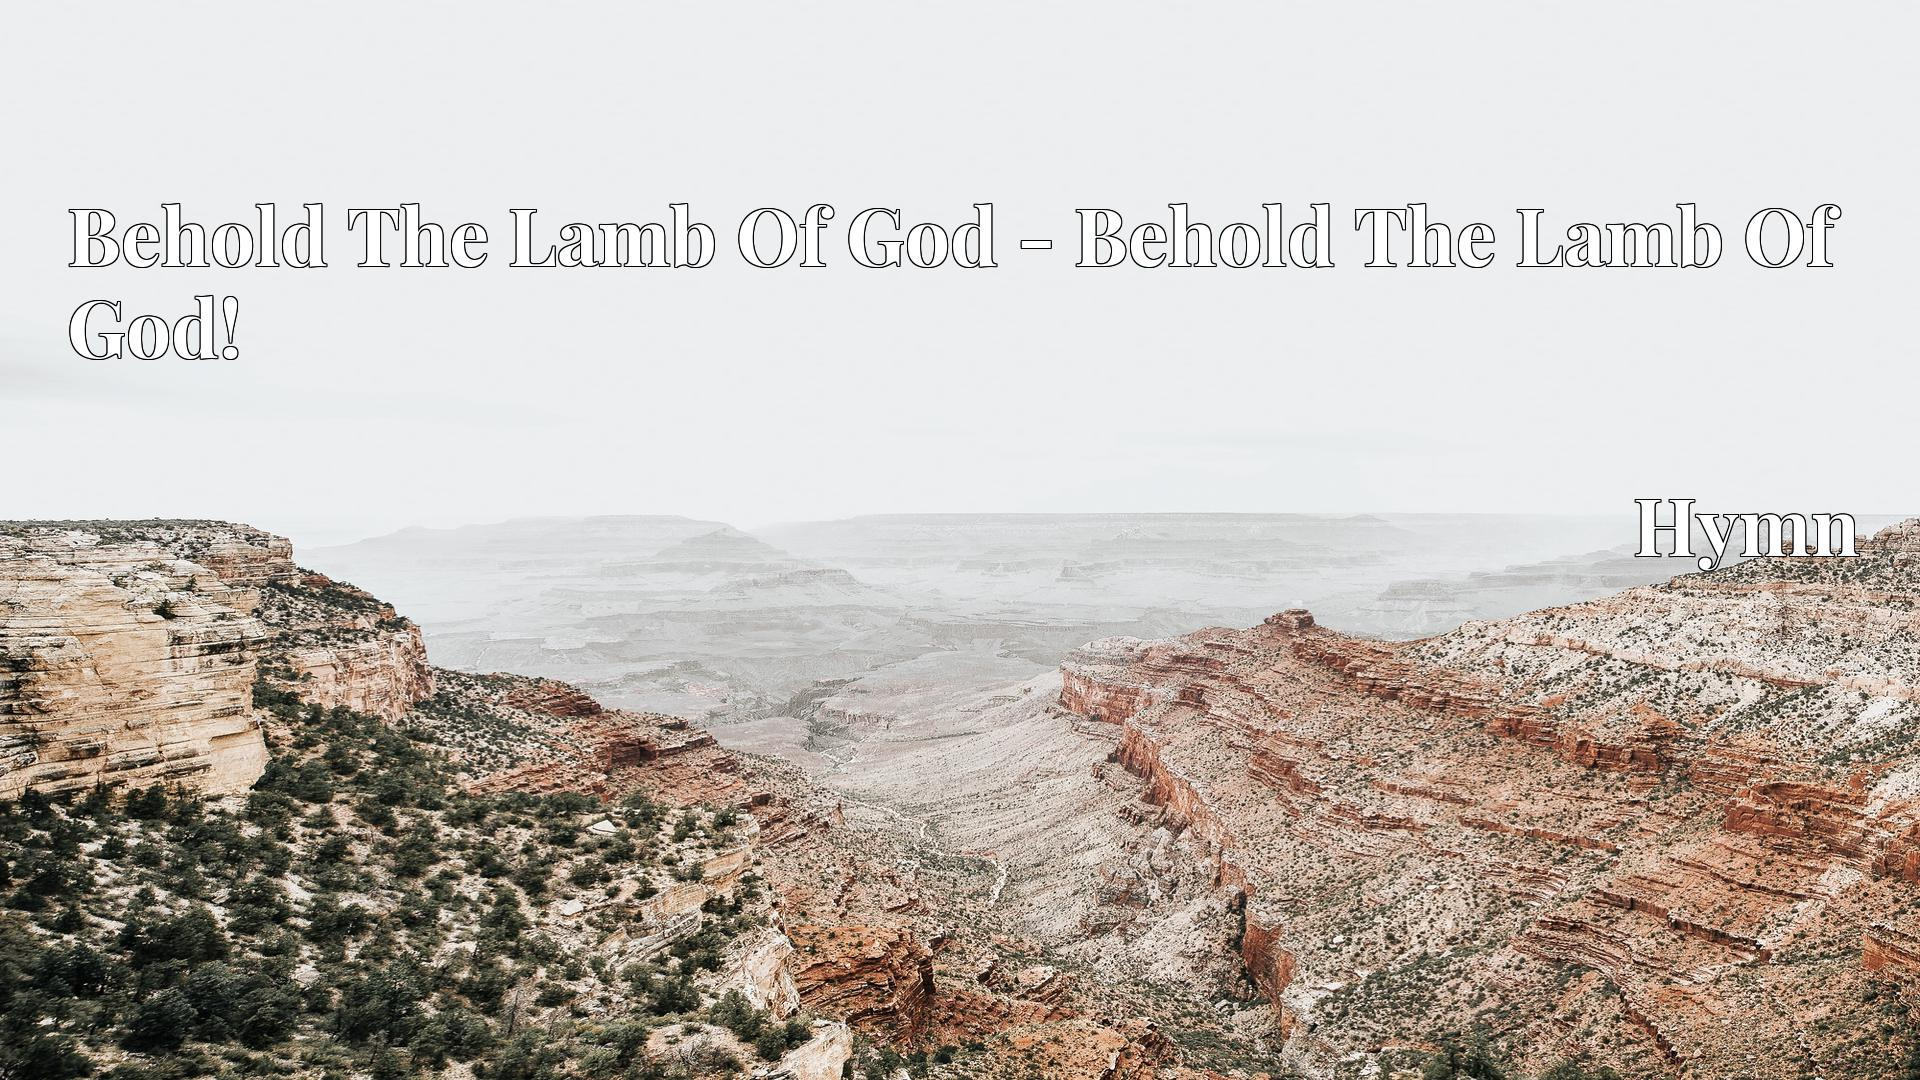 Behold The Lamb Of God - Behold The Lamb Of God! Hymn